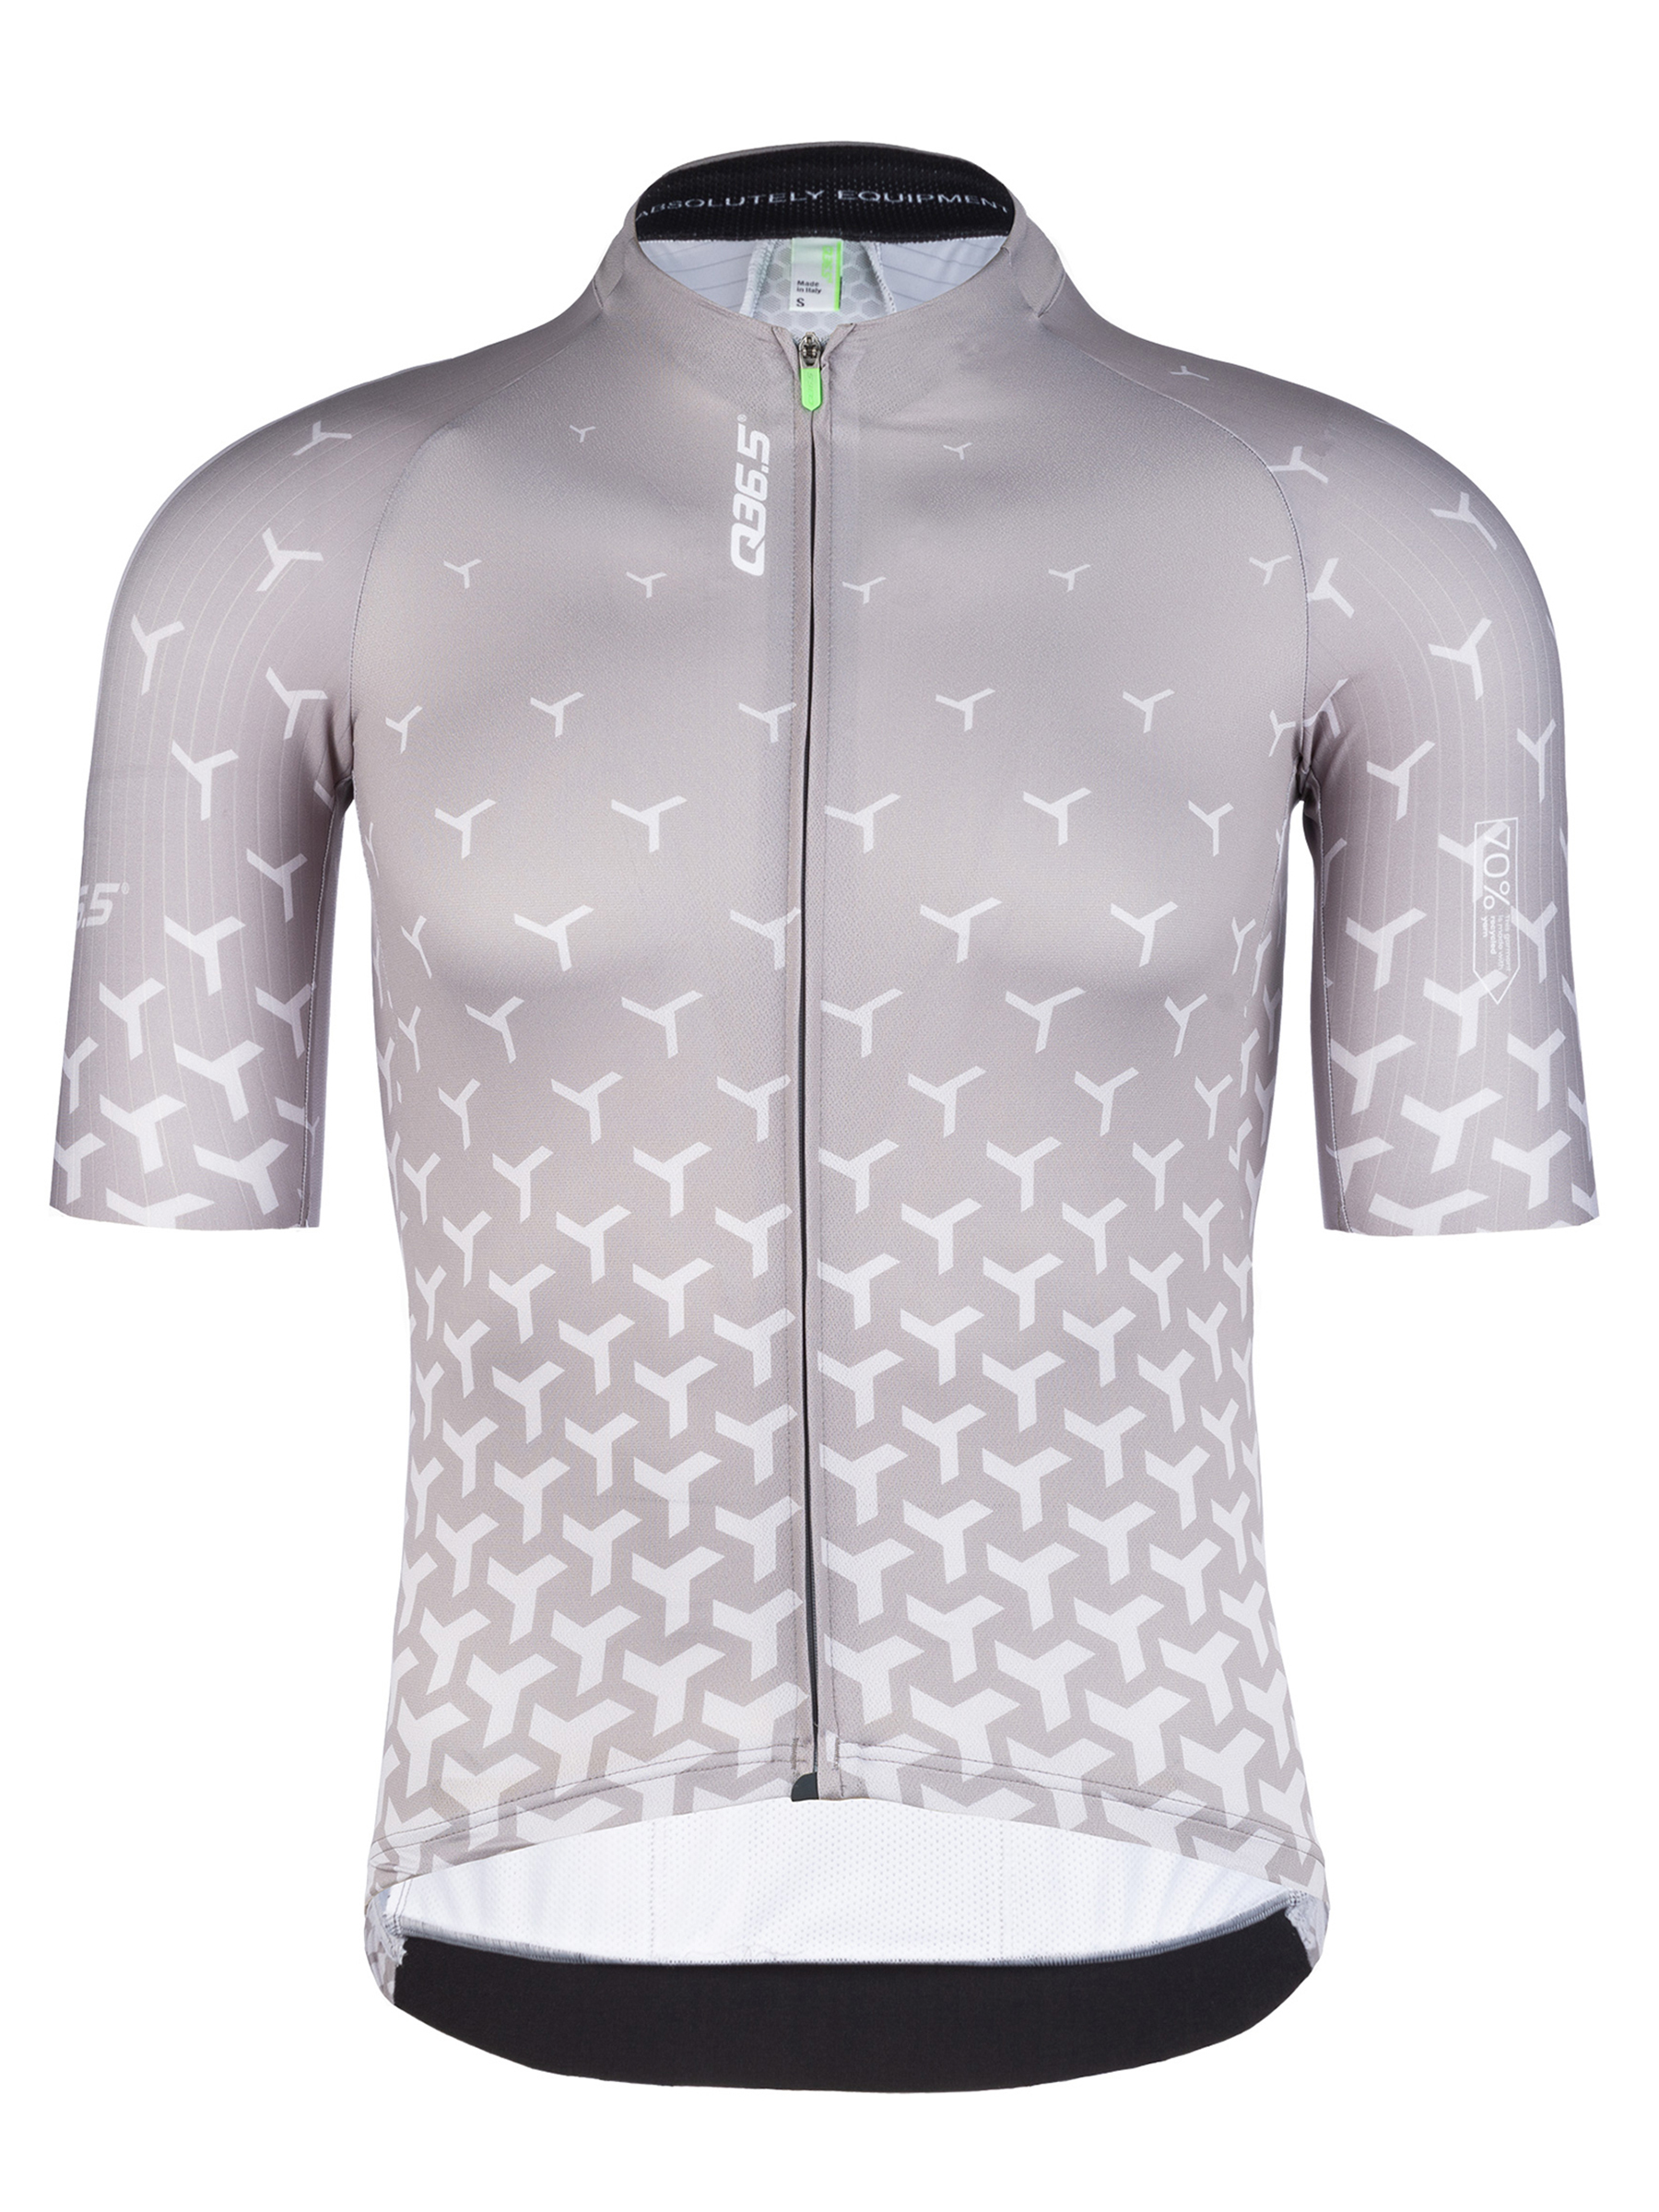 mens-cycling-jersey-R2-Y-light-grey-031Y.16_turtledove